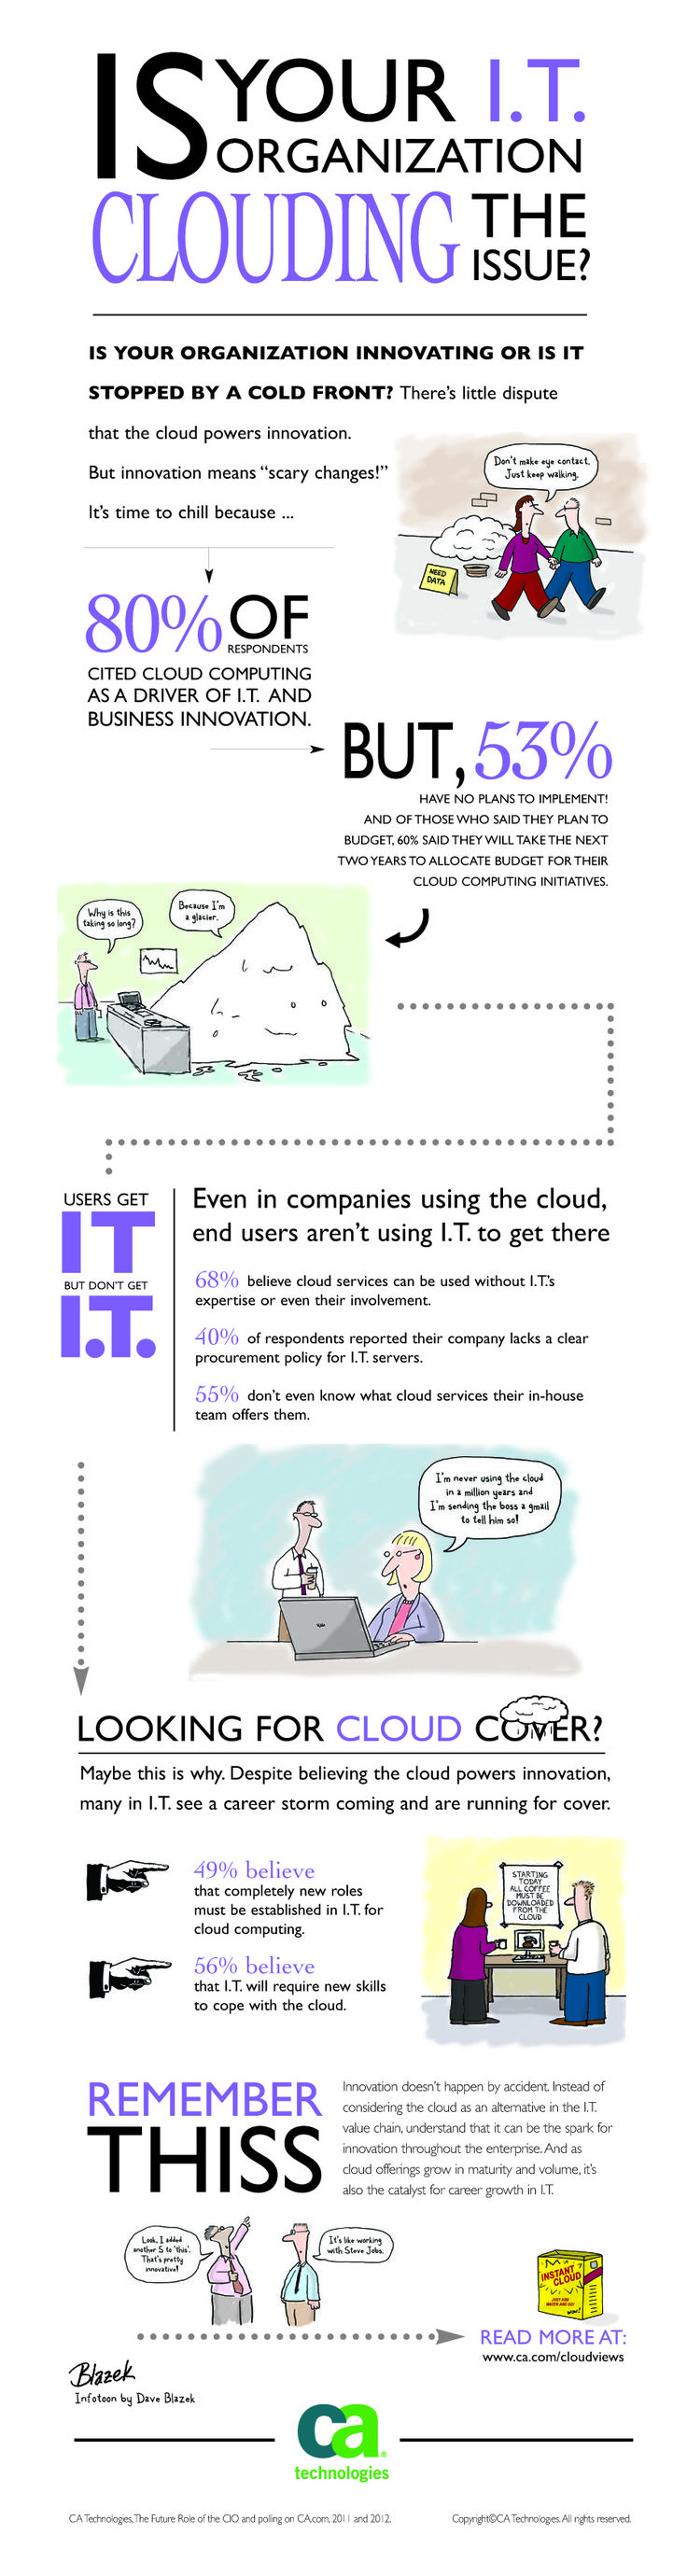 What's holding users back from taking full advantage of cloud computing to drive innovation?